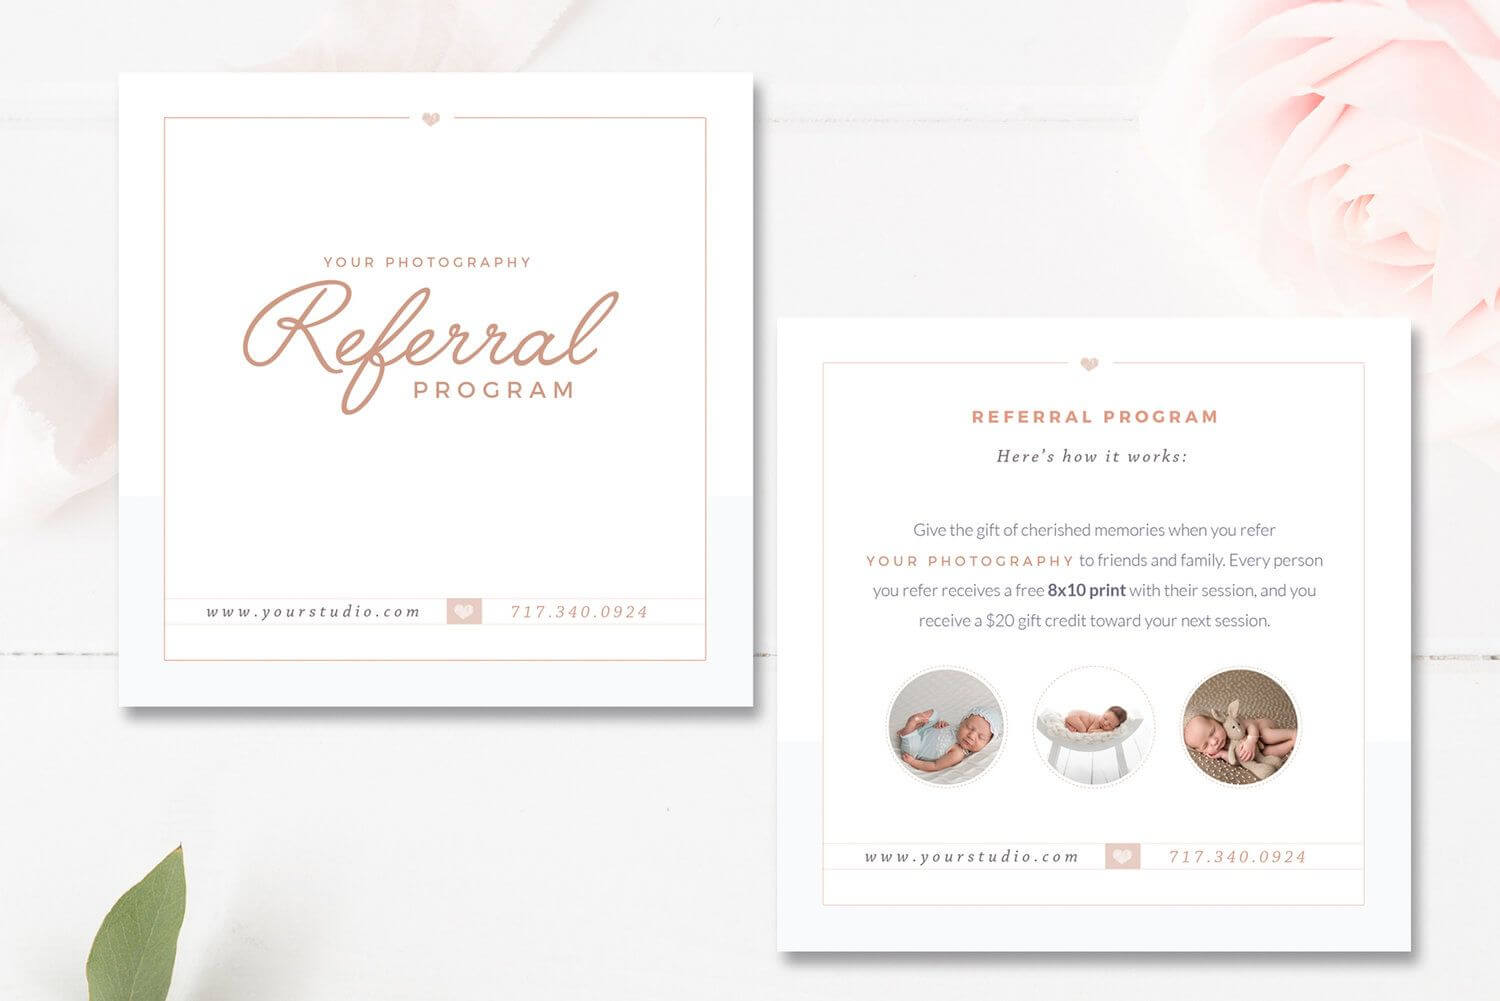 Photography Referral Card Templates, Referral Program Pertaining To Photography Referral Card Templates